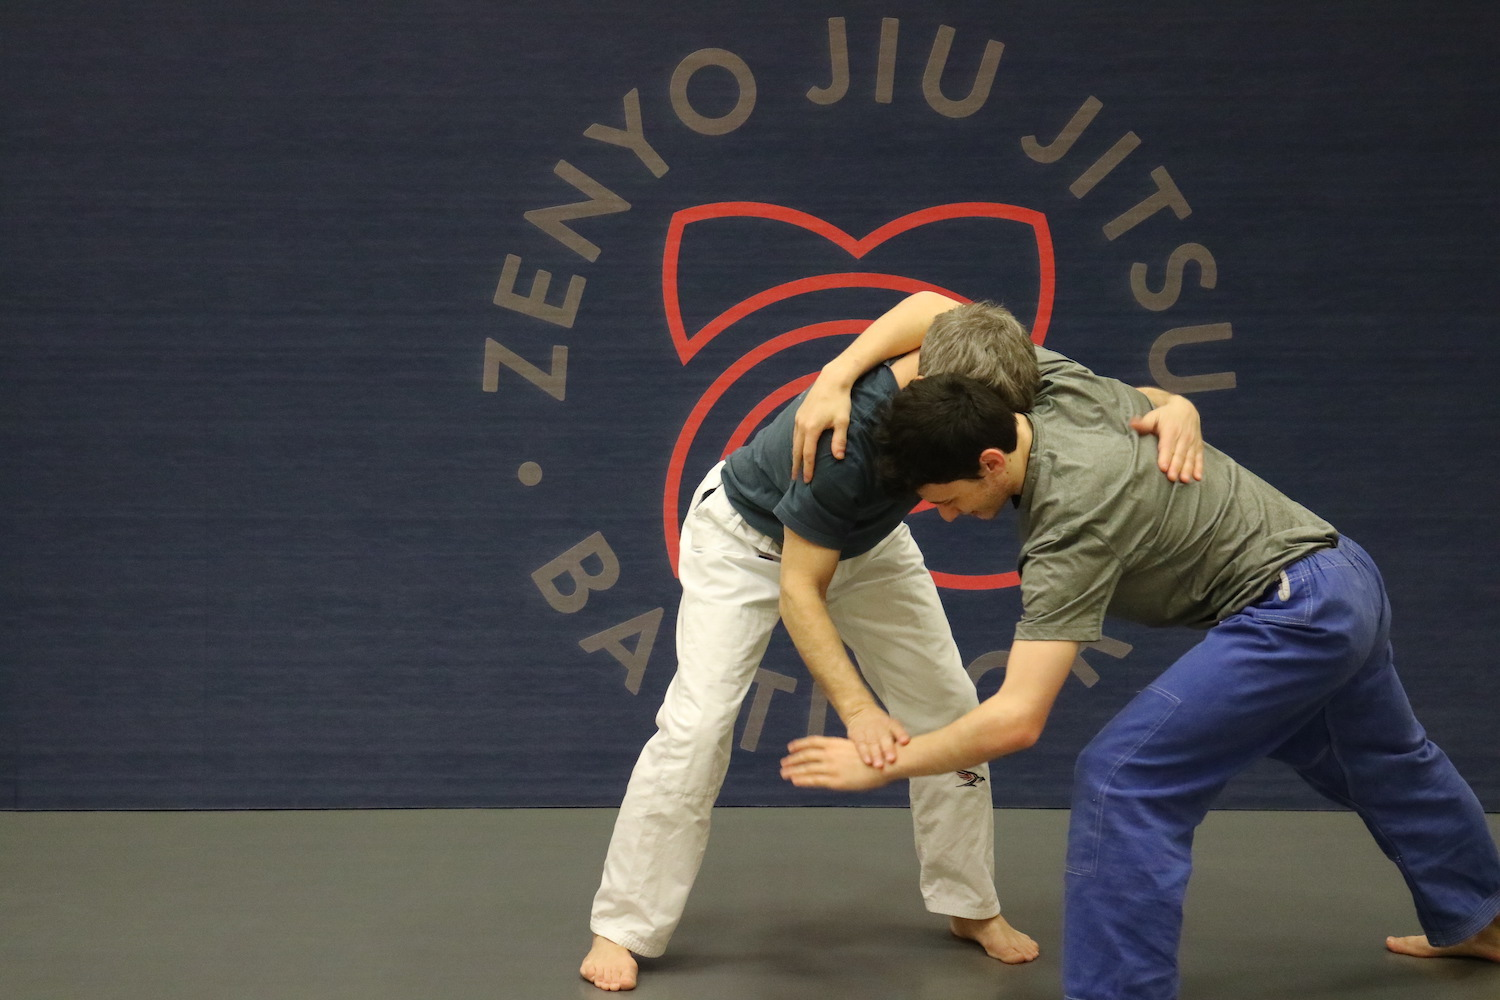 Wrestling Fundamental Takedowns For Jiu Jitsu